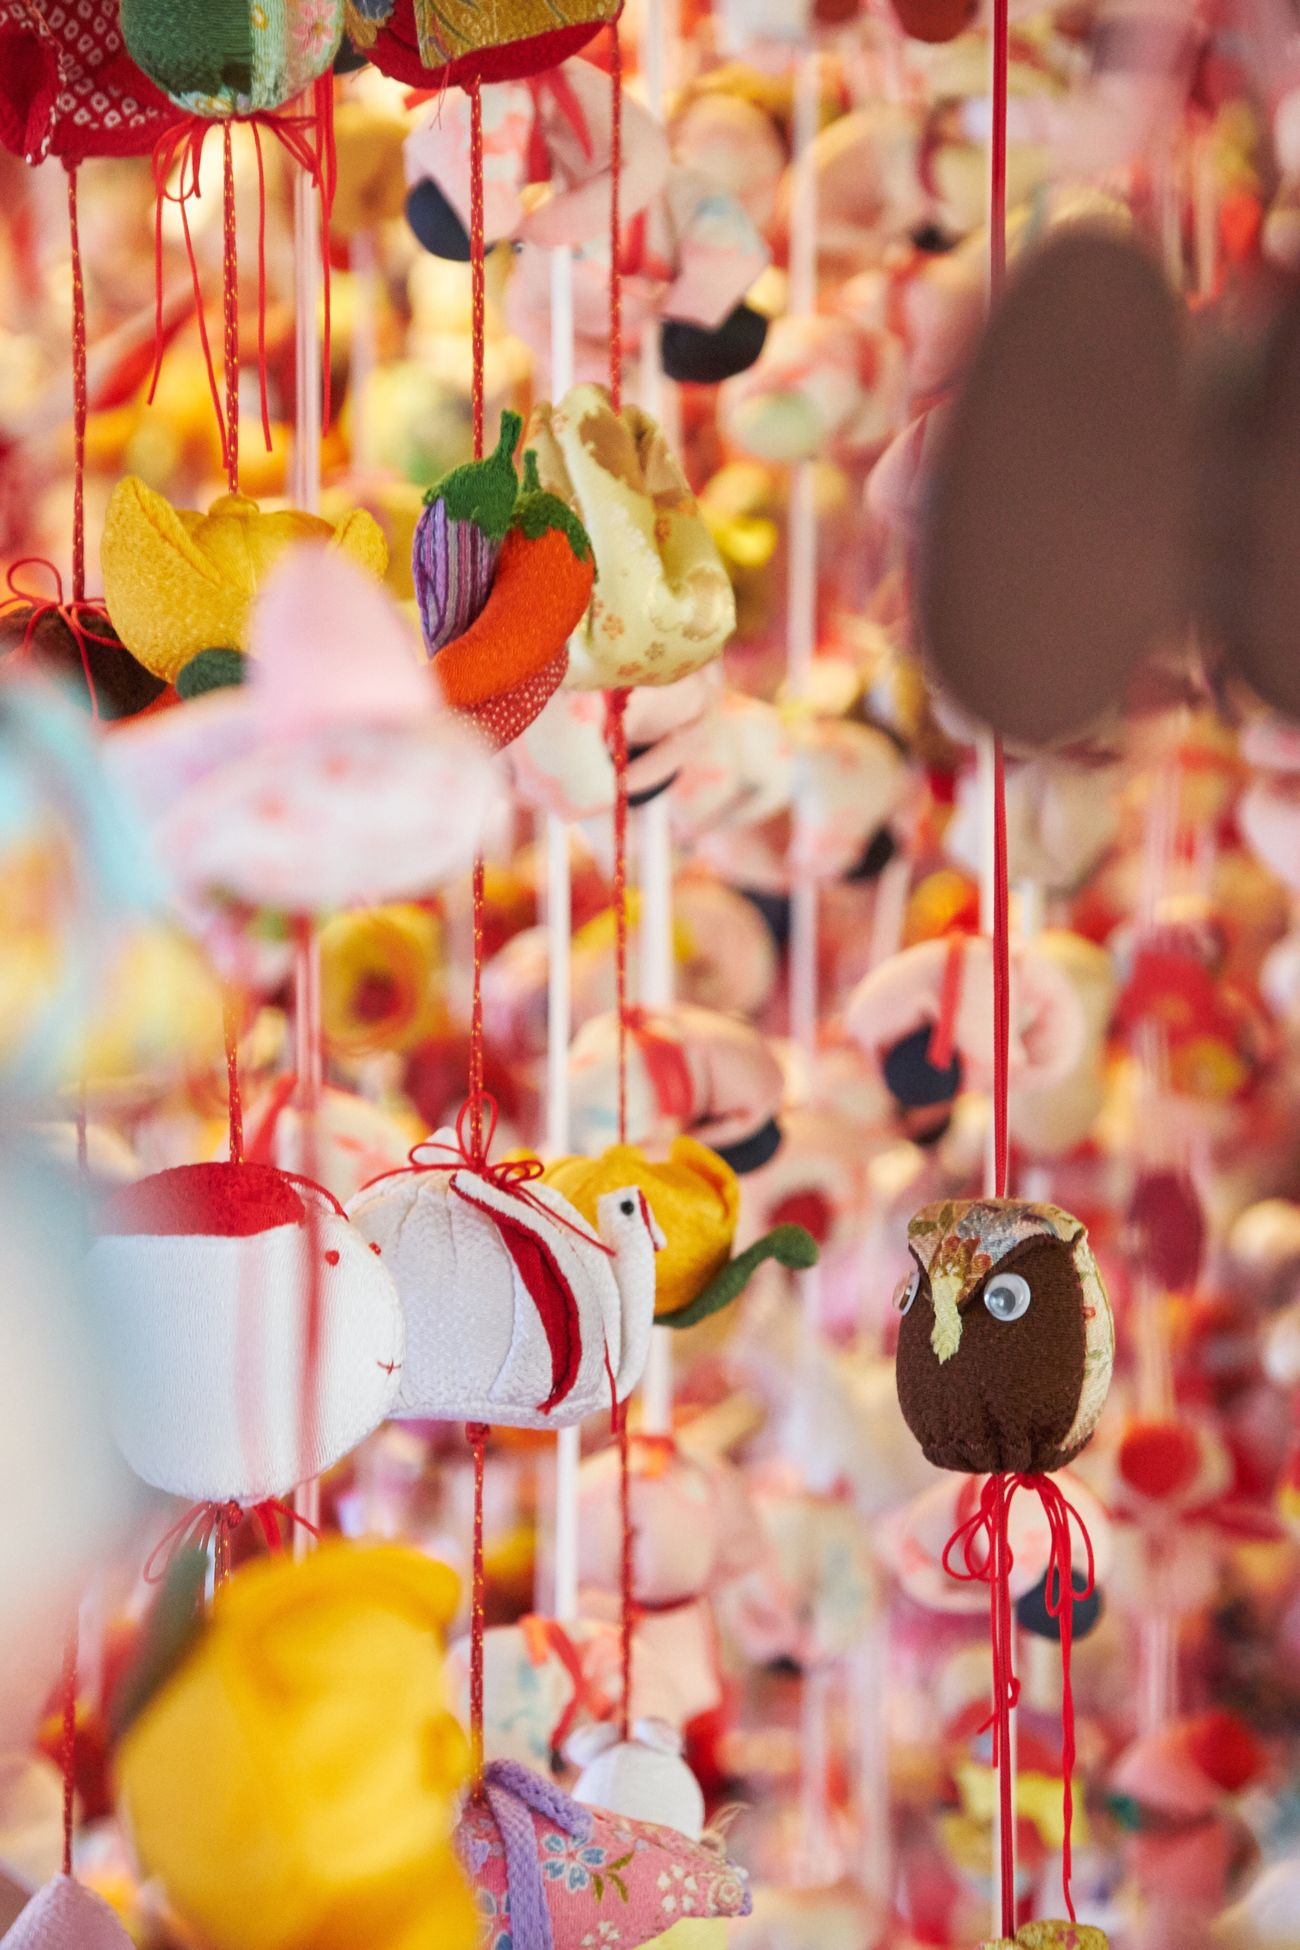 Hanging Focus On Foreground Variation No People Close-up Large Group Of Objects Multi Colored Choice Wind Chime Day Outdoors Astrology Sign Colors Japan Culture Eye4photography  EyeEm Best Shots Colorful Colour Of Life Close Up